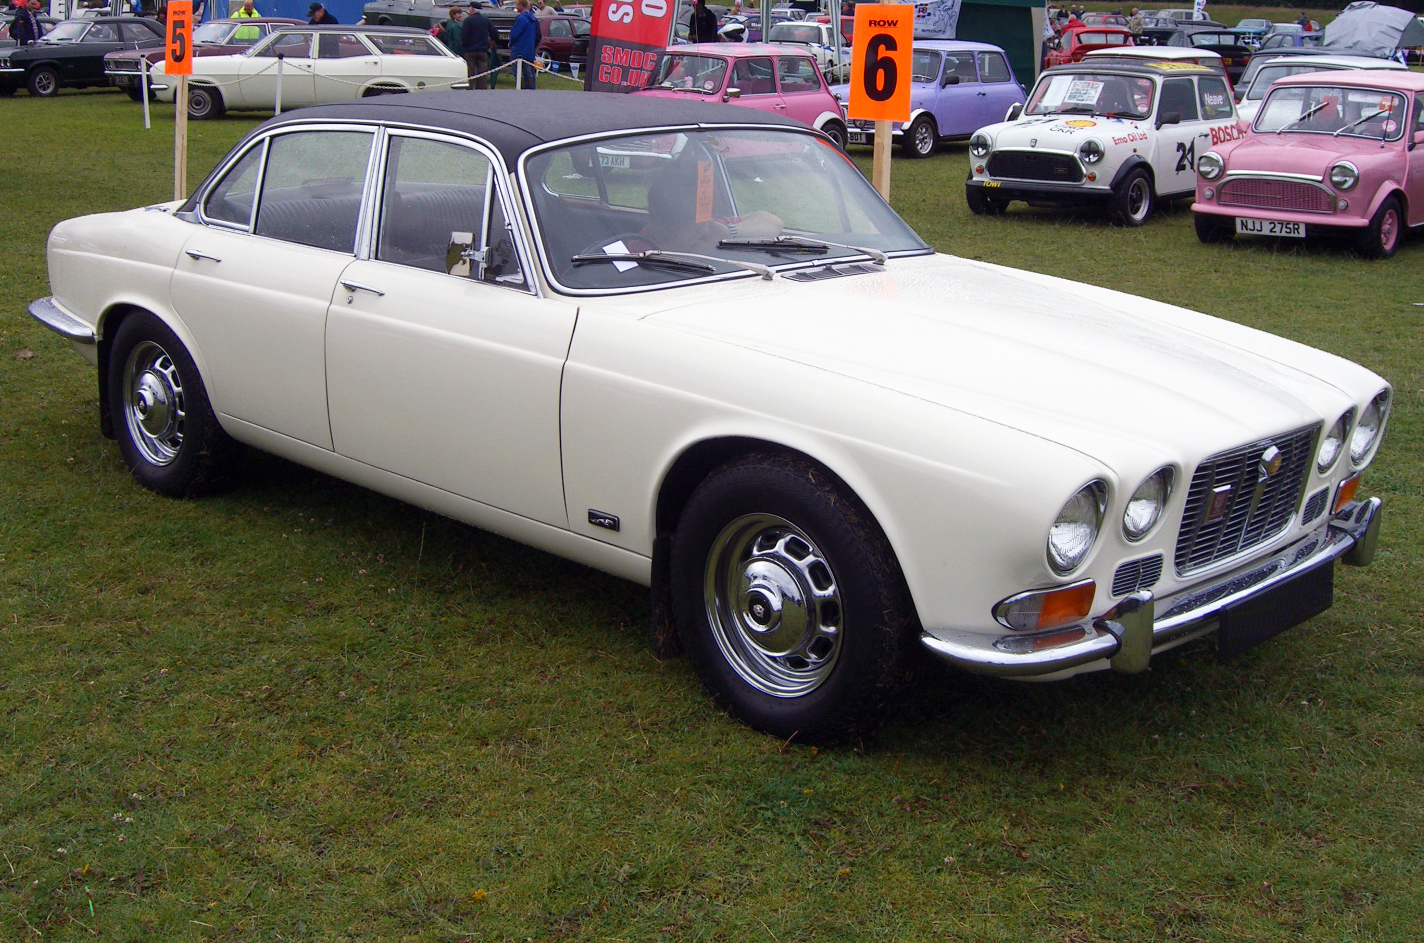 XJ6 Series 1 2.8 and 4.2